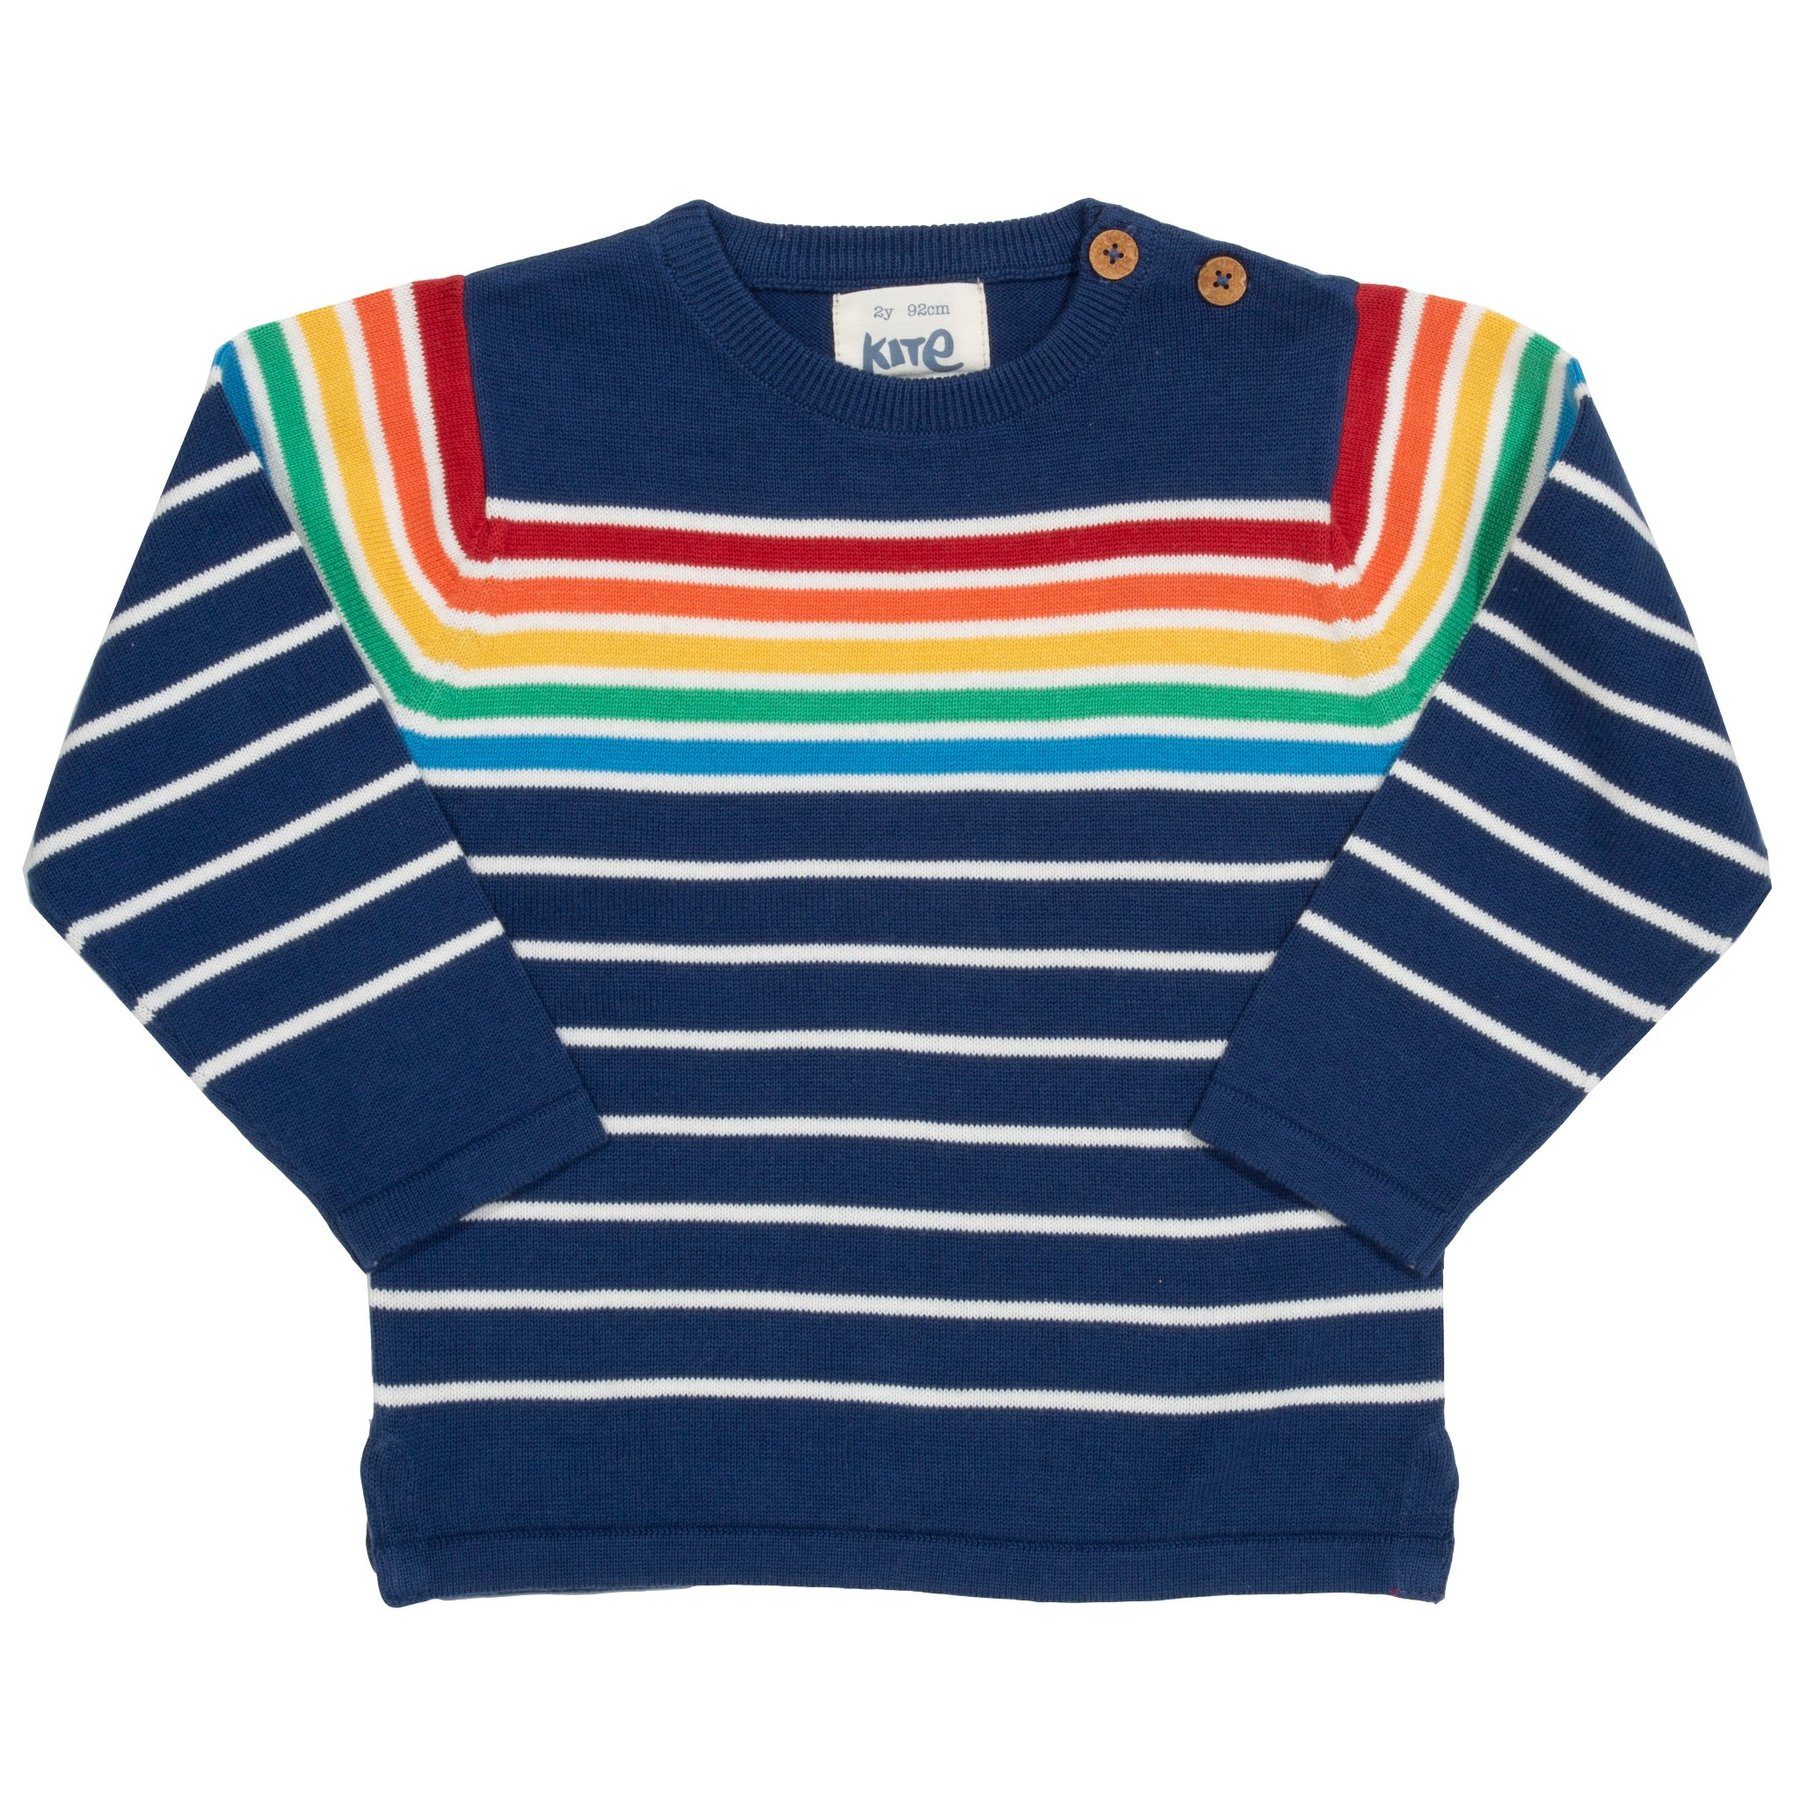 NOW £23.20 Kite Retro Rainbow Jumper